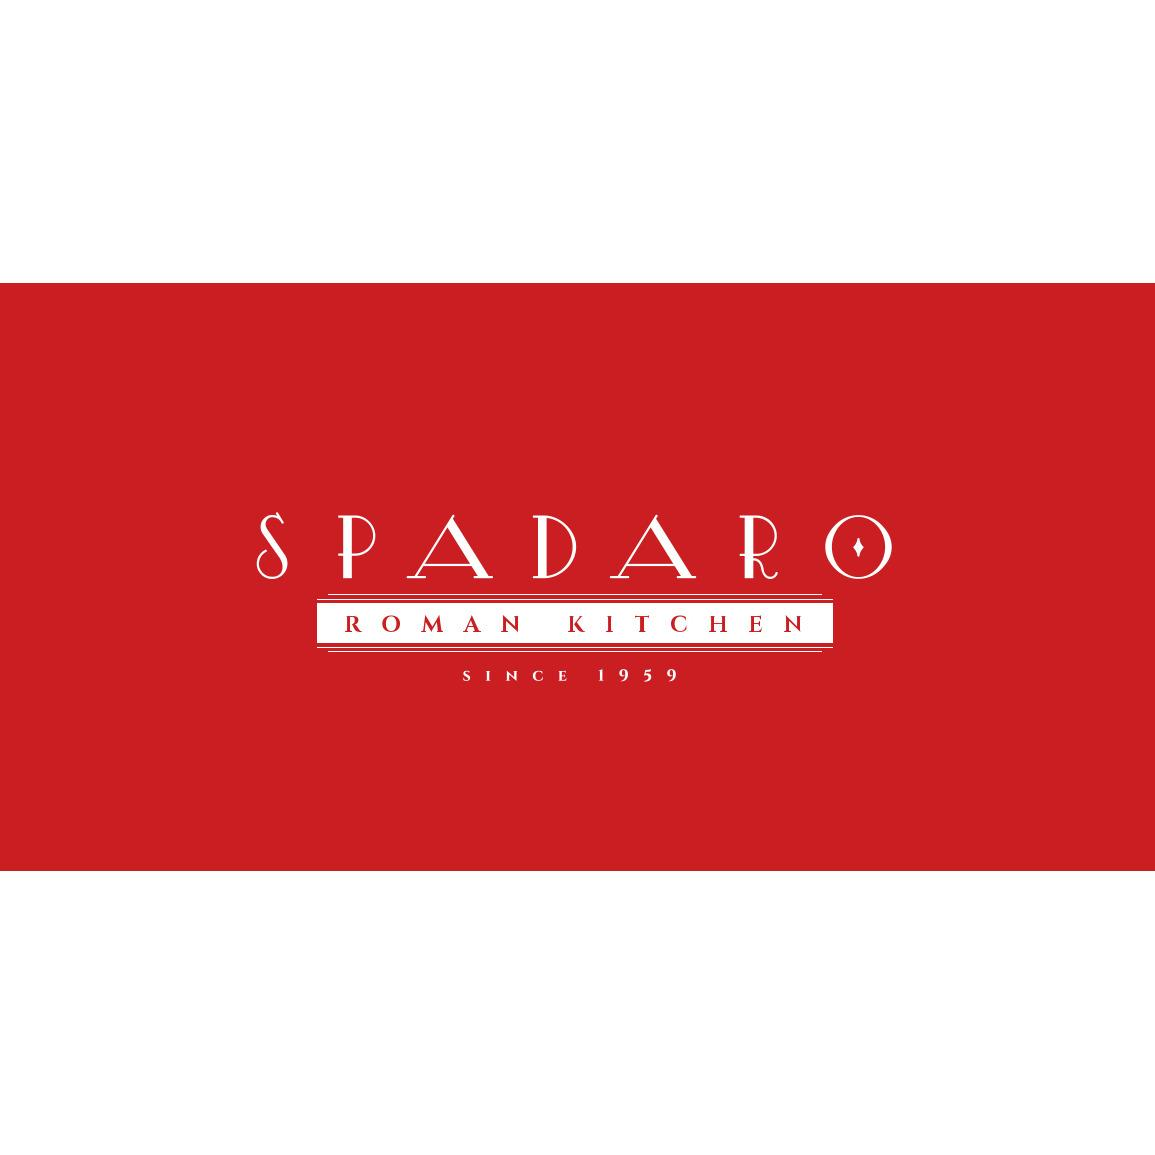 Spadaro Roman Kitchen